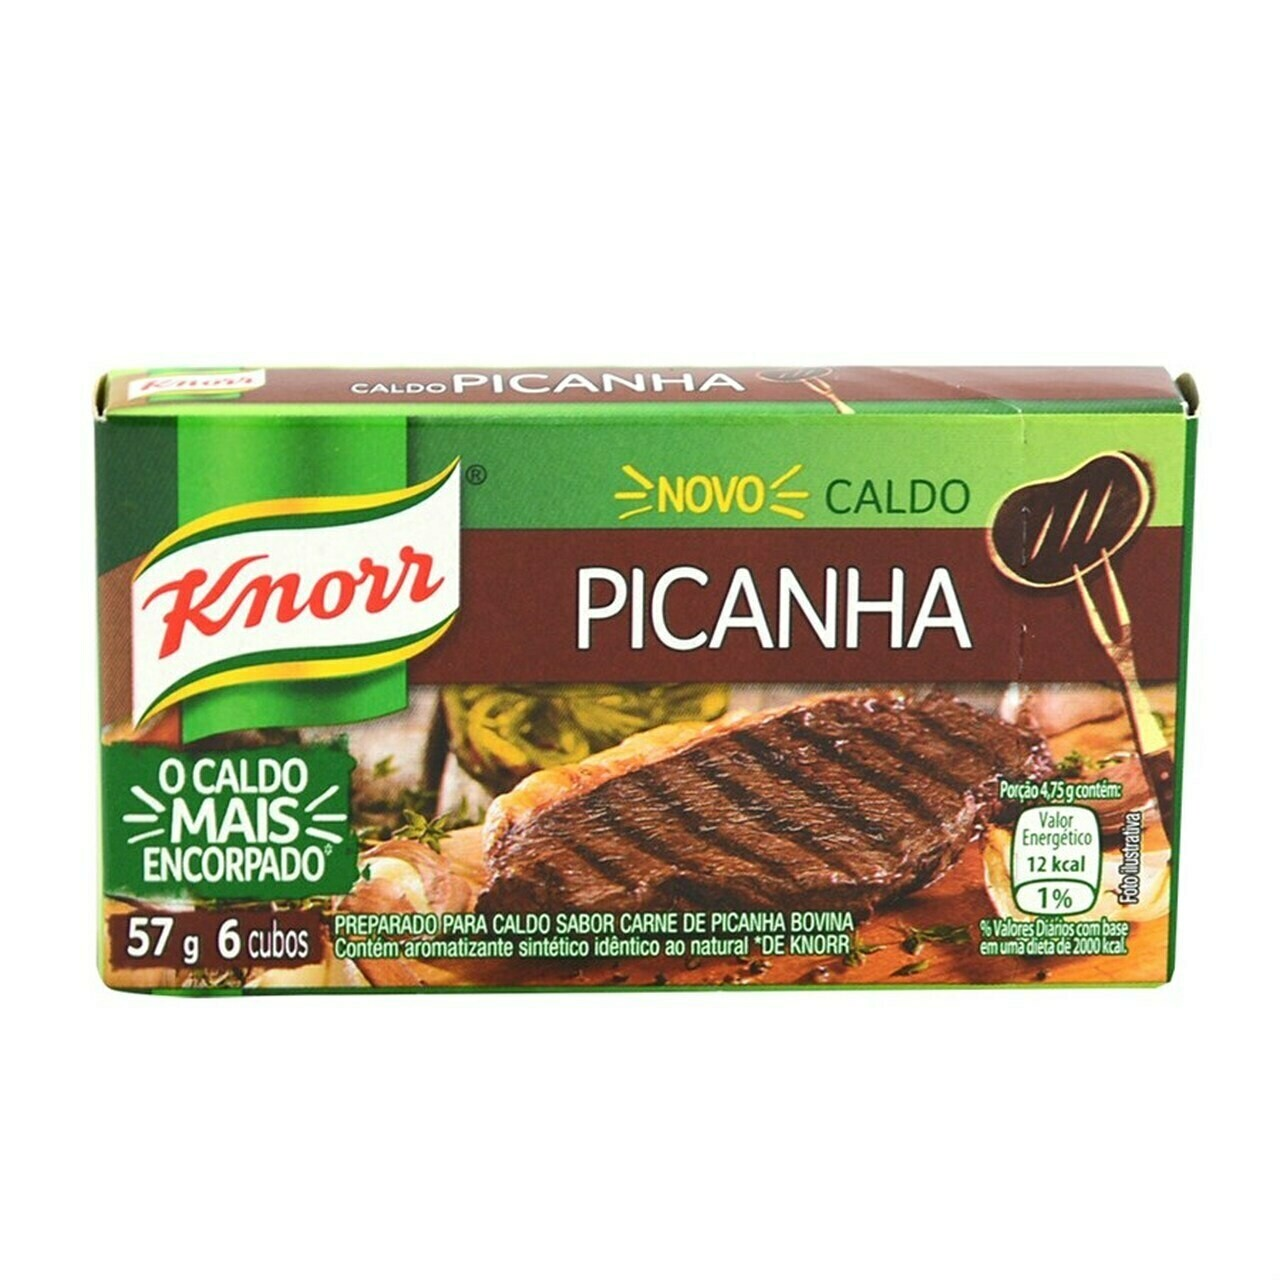 Knorr Picanha